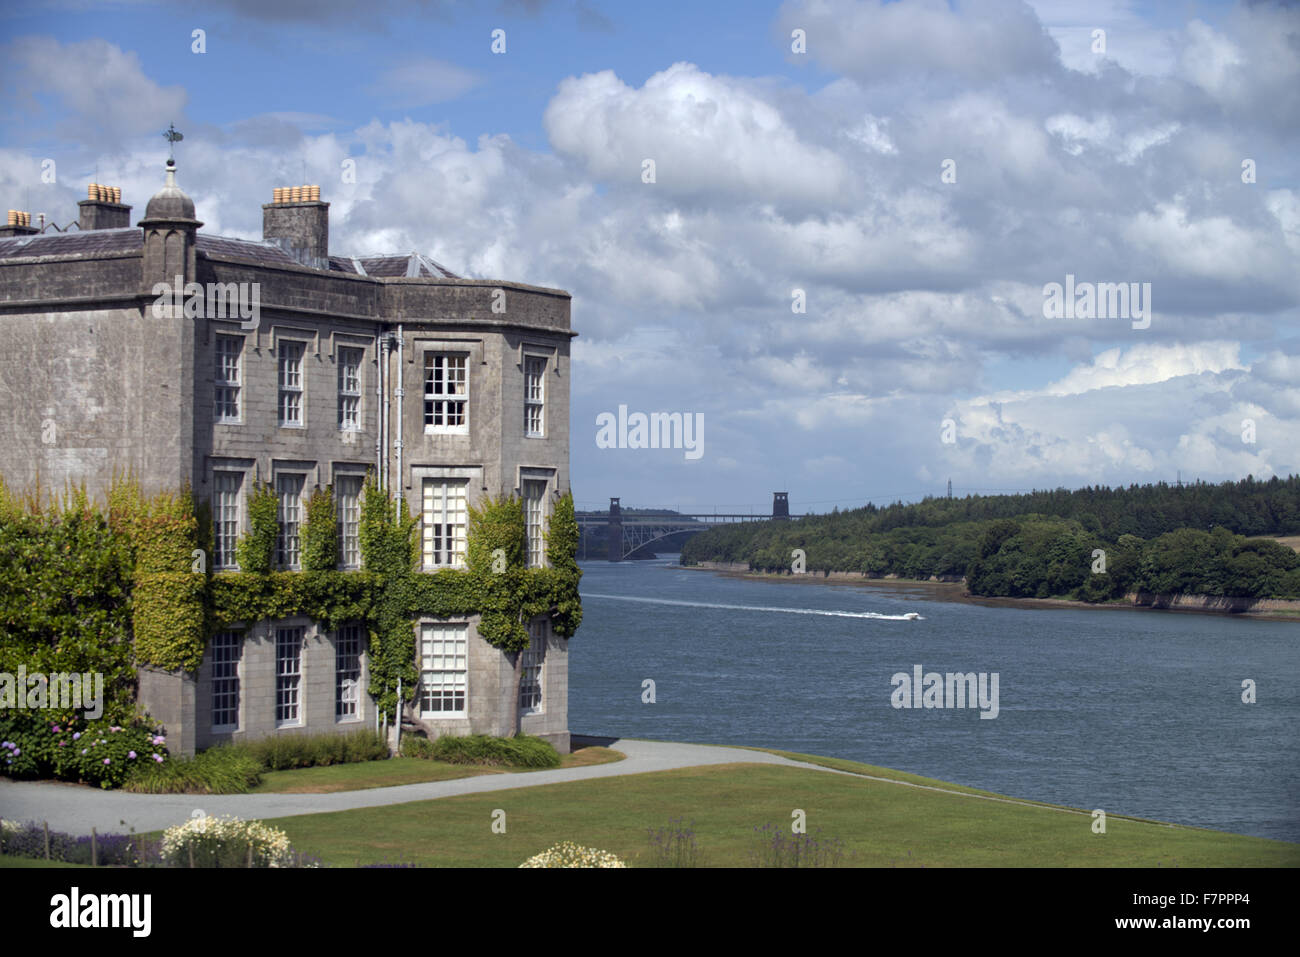 Plas Newydd Country House and Gardens, Anglesey, Wales. This fine 18th century mansion sits on the shores of the - Stock Image